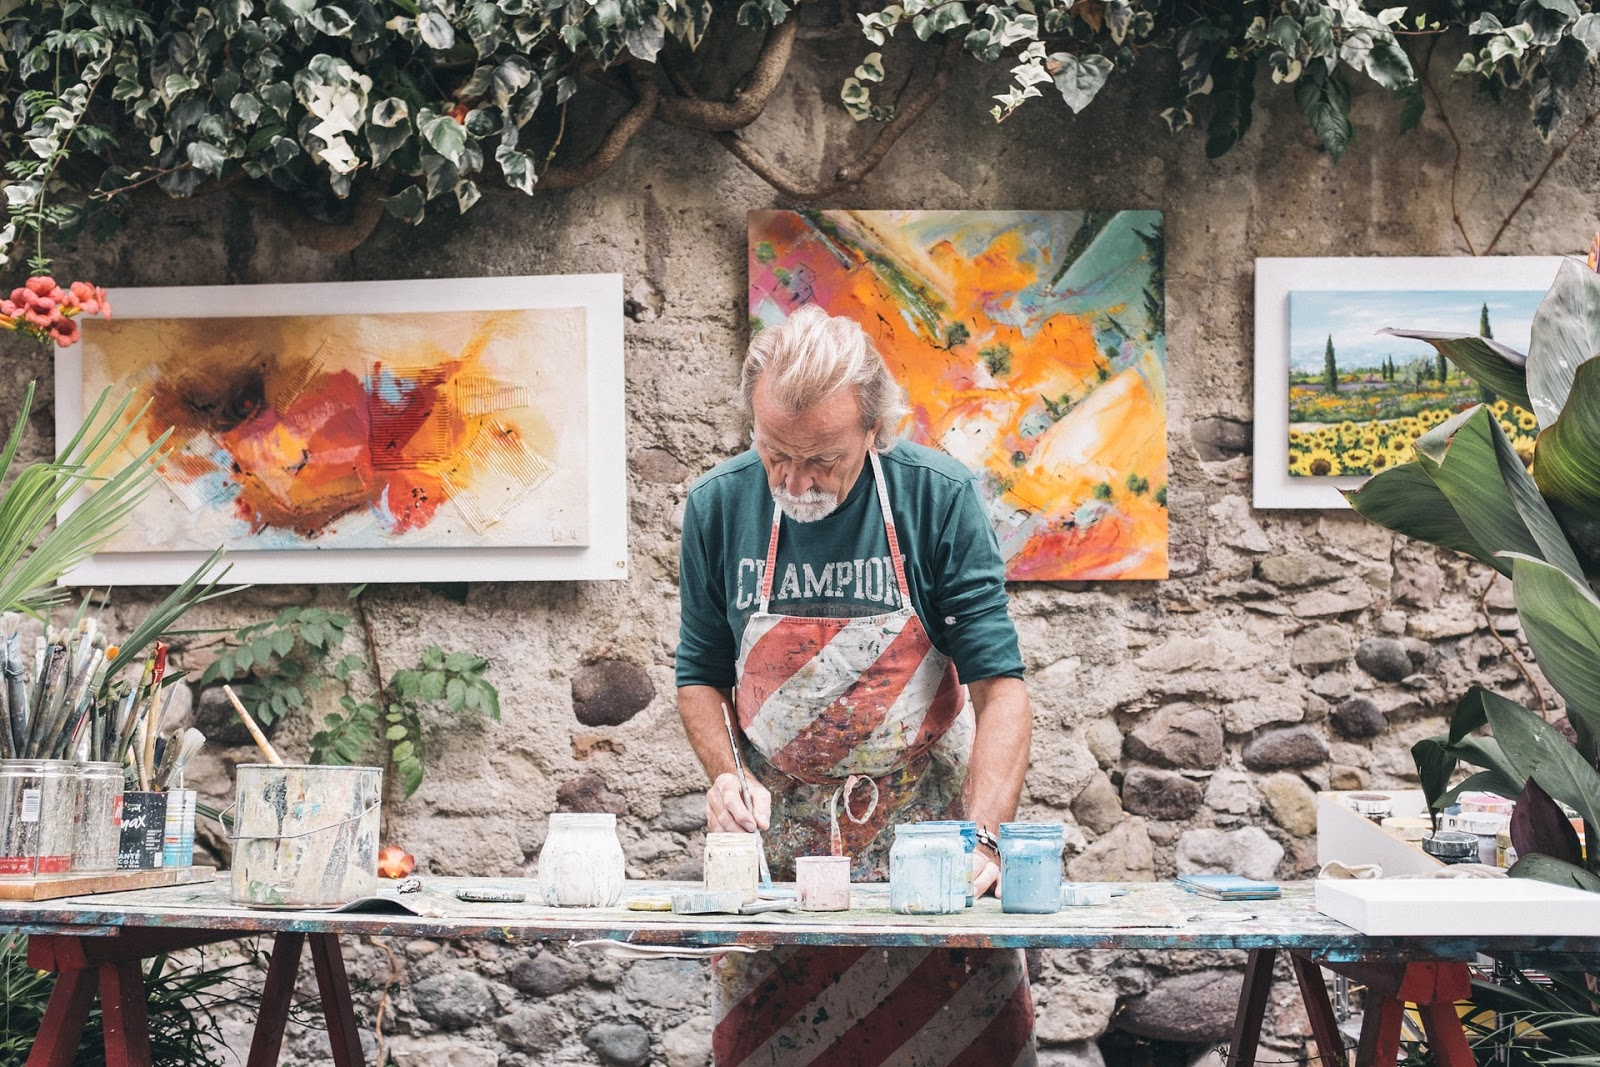 a painter works in an outdoor studio